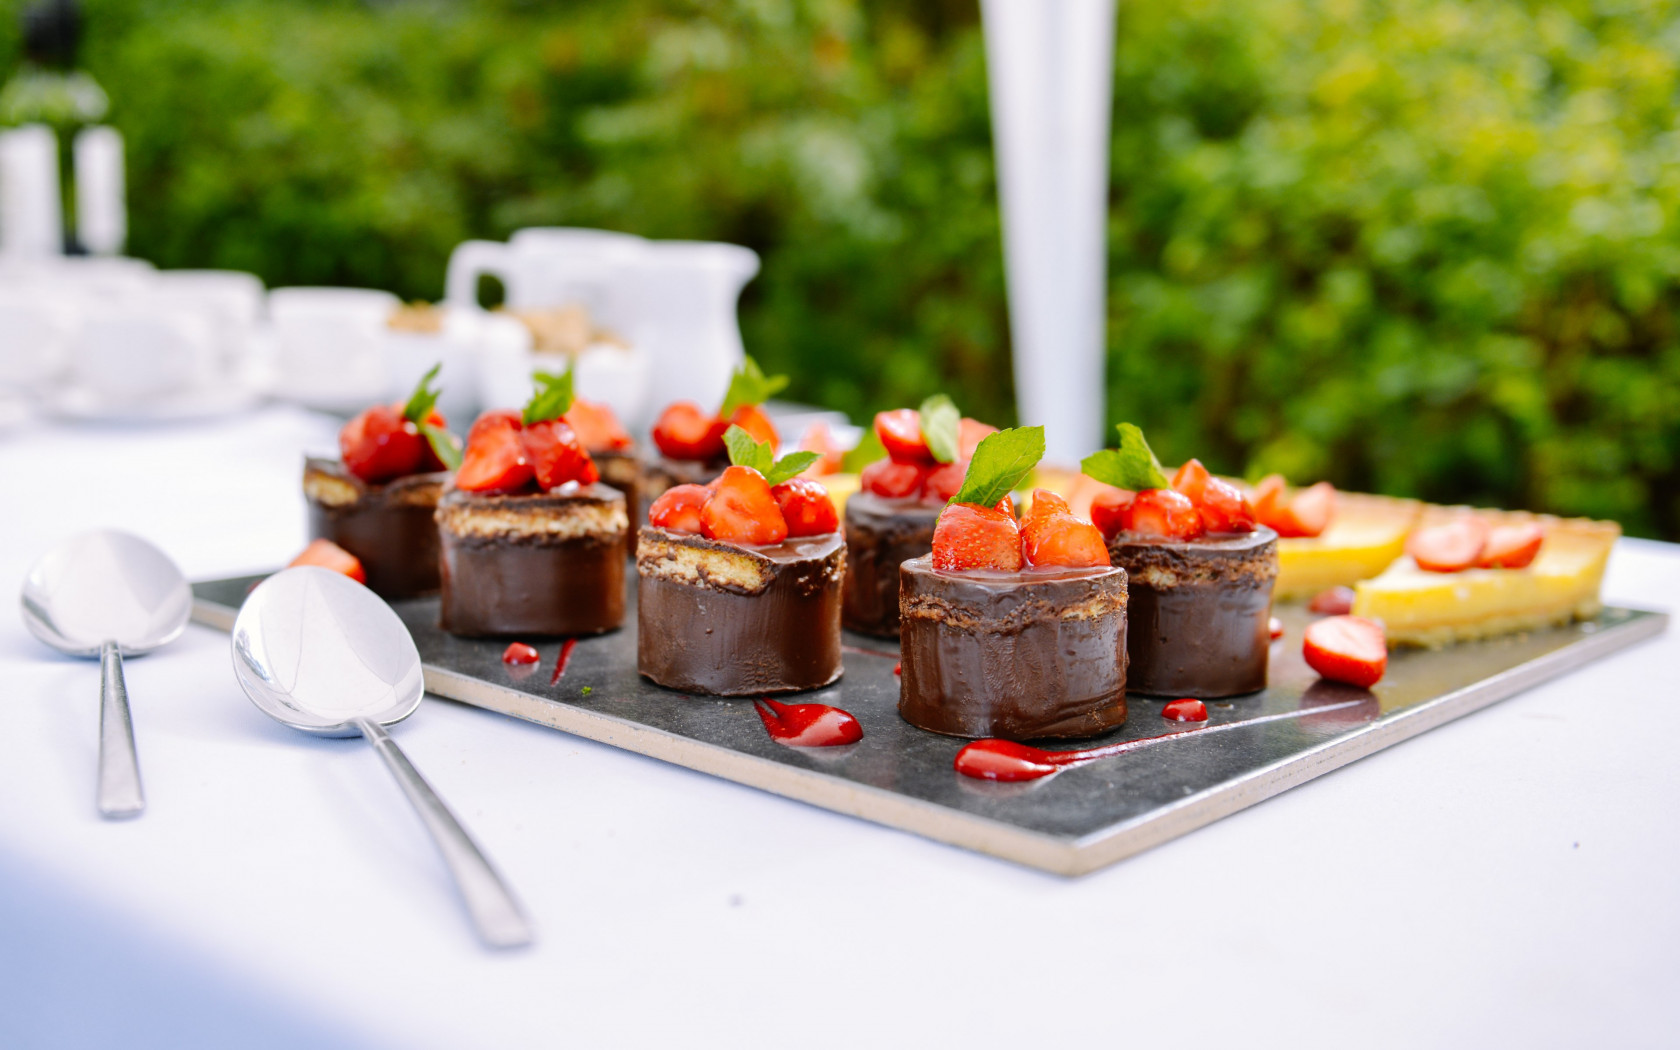 Chocolate cakes with strawberries | 1680x1050 wallpaper